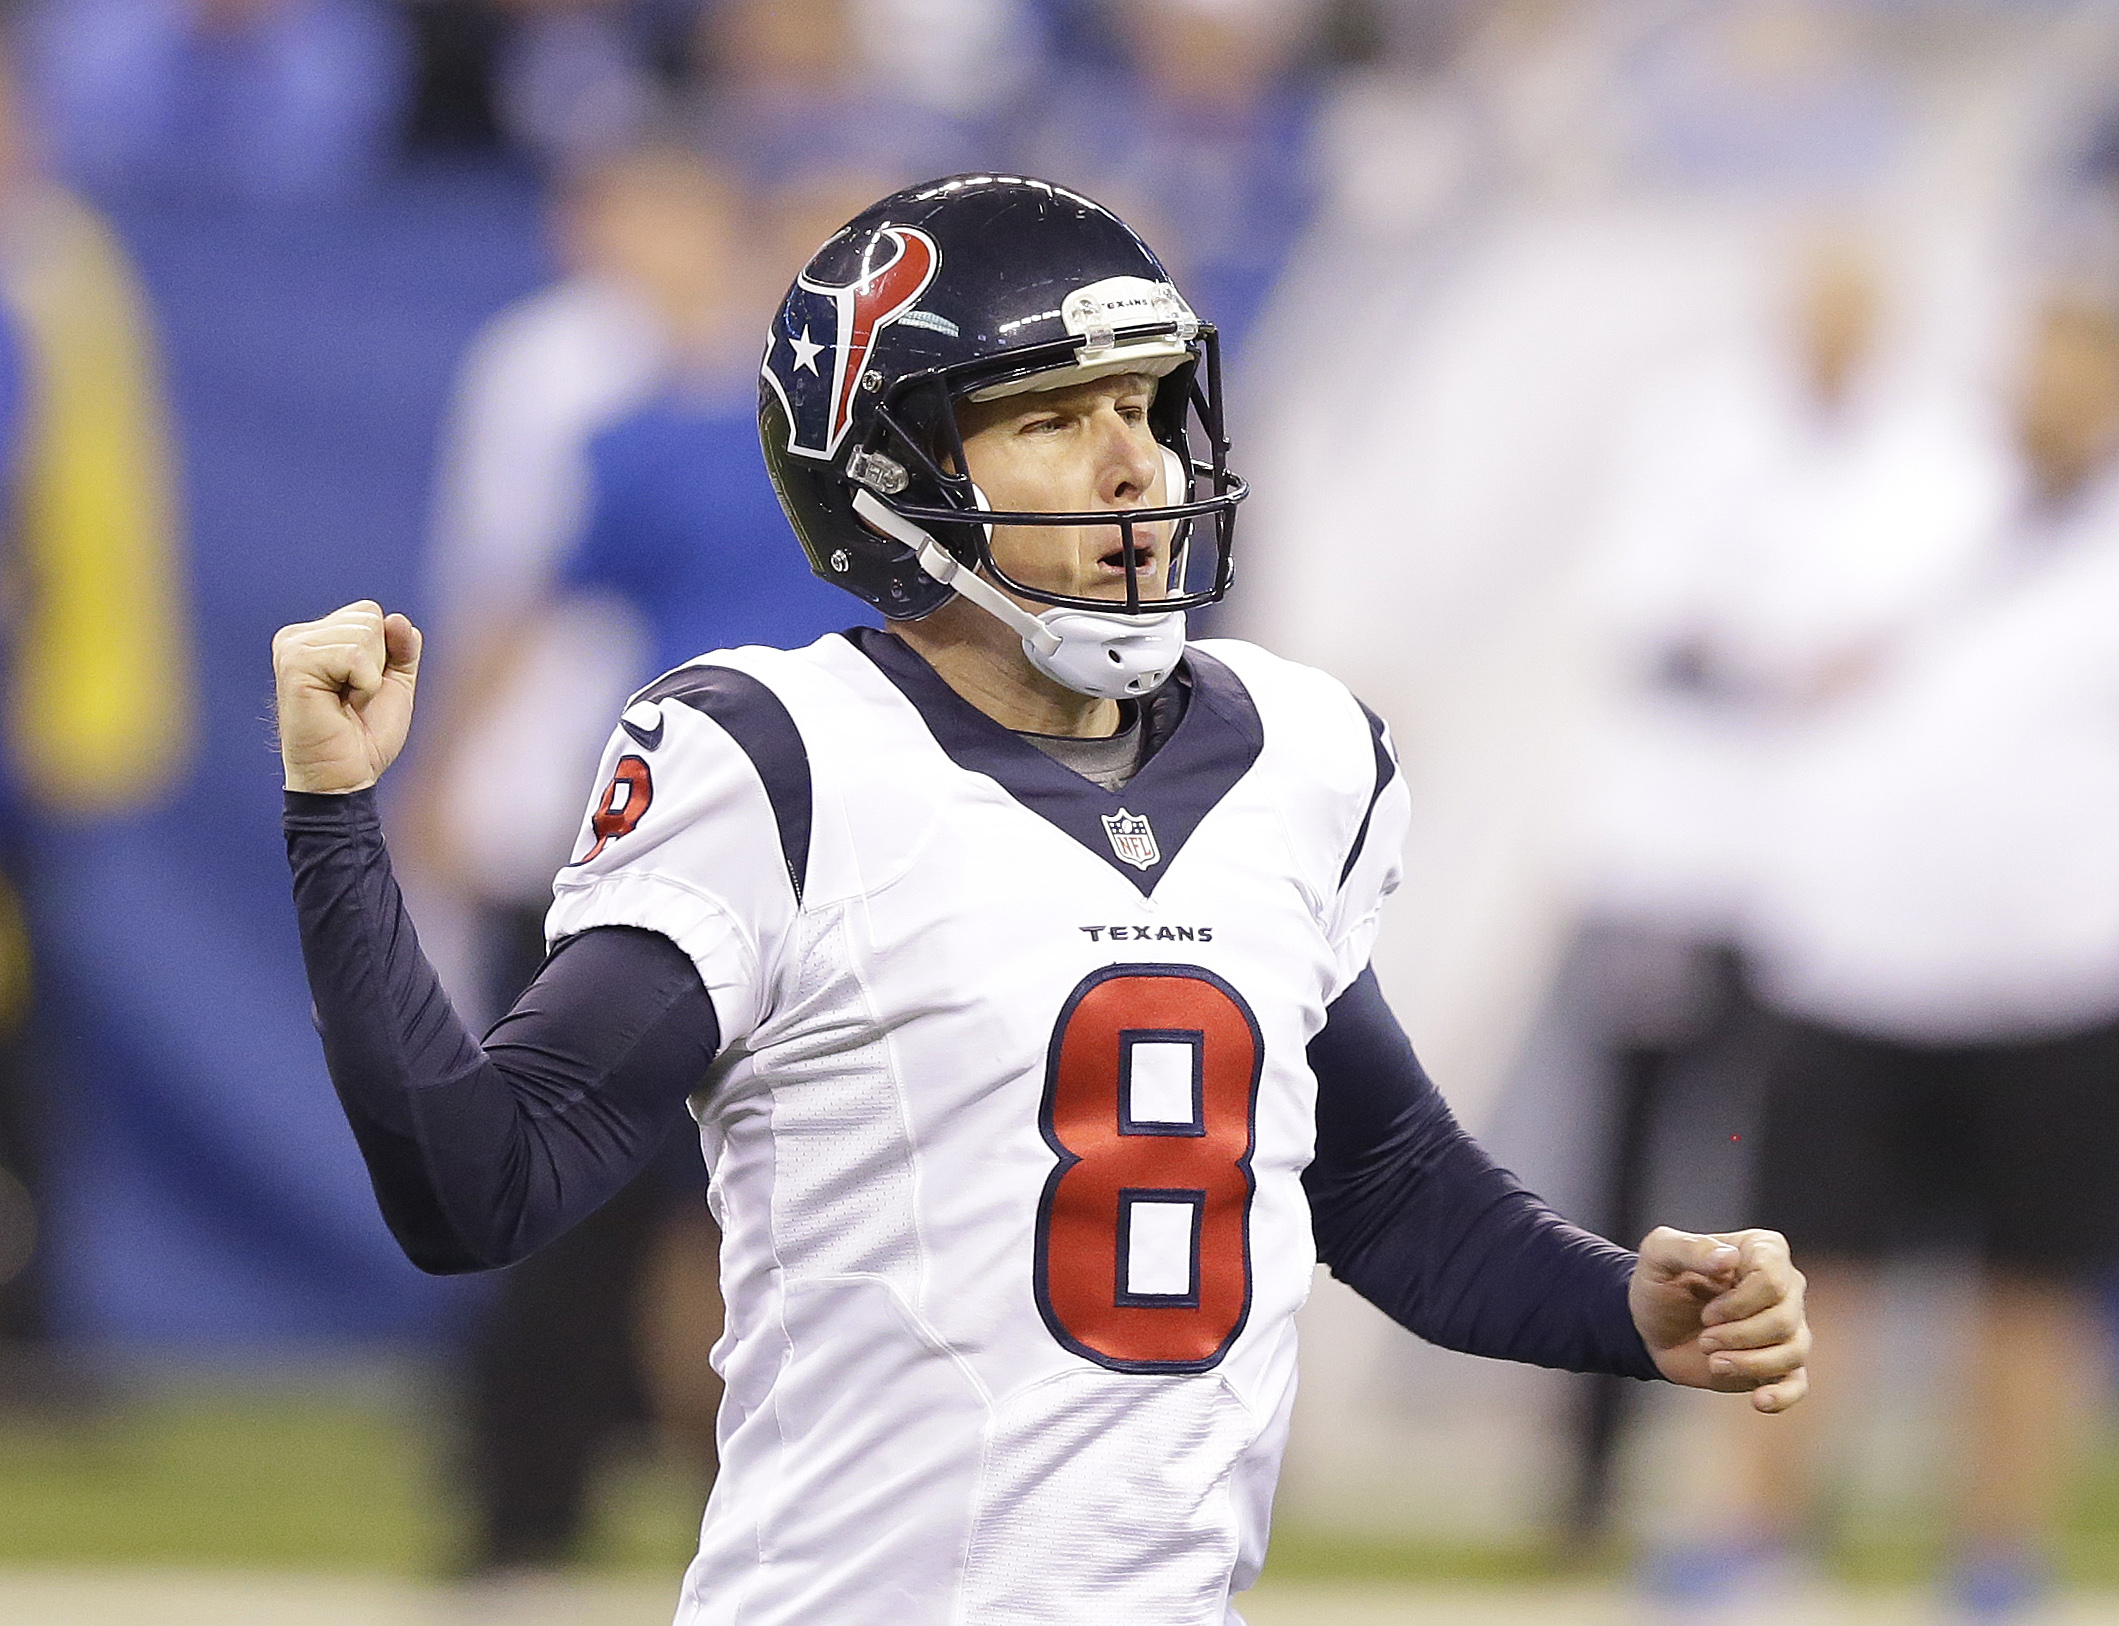 FILE - In this Dec. 20, 2015, file photo, Houston Texans' Nick Novak (8) celebrates after kicking a 46-yard field goal during the second half of an NFL football game against the Indianapolis Colts in Indianapolis. The Houston Texans know exactly what's on